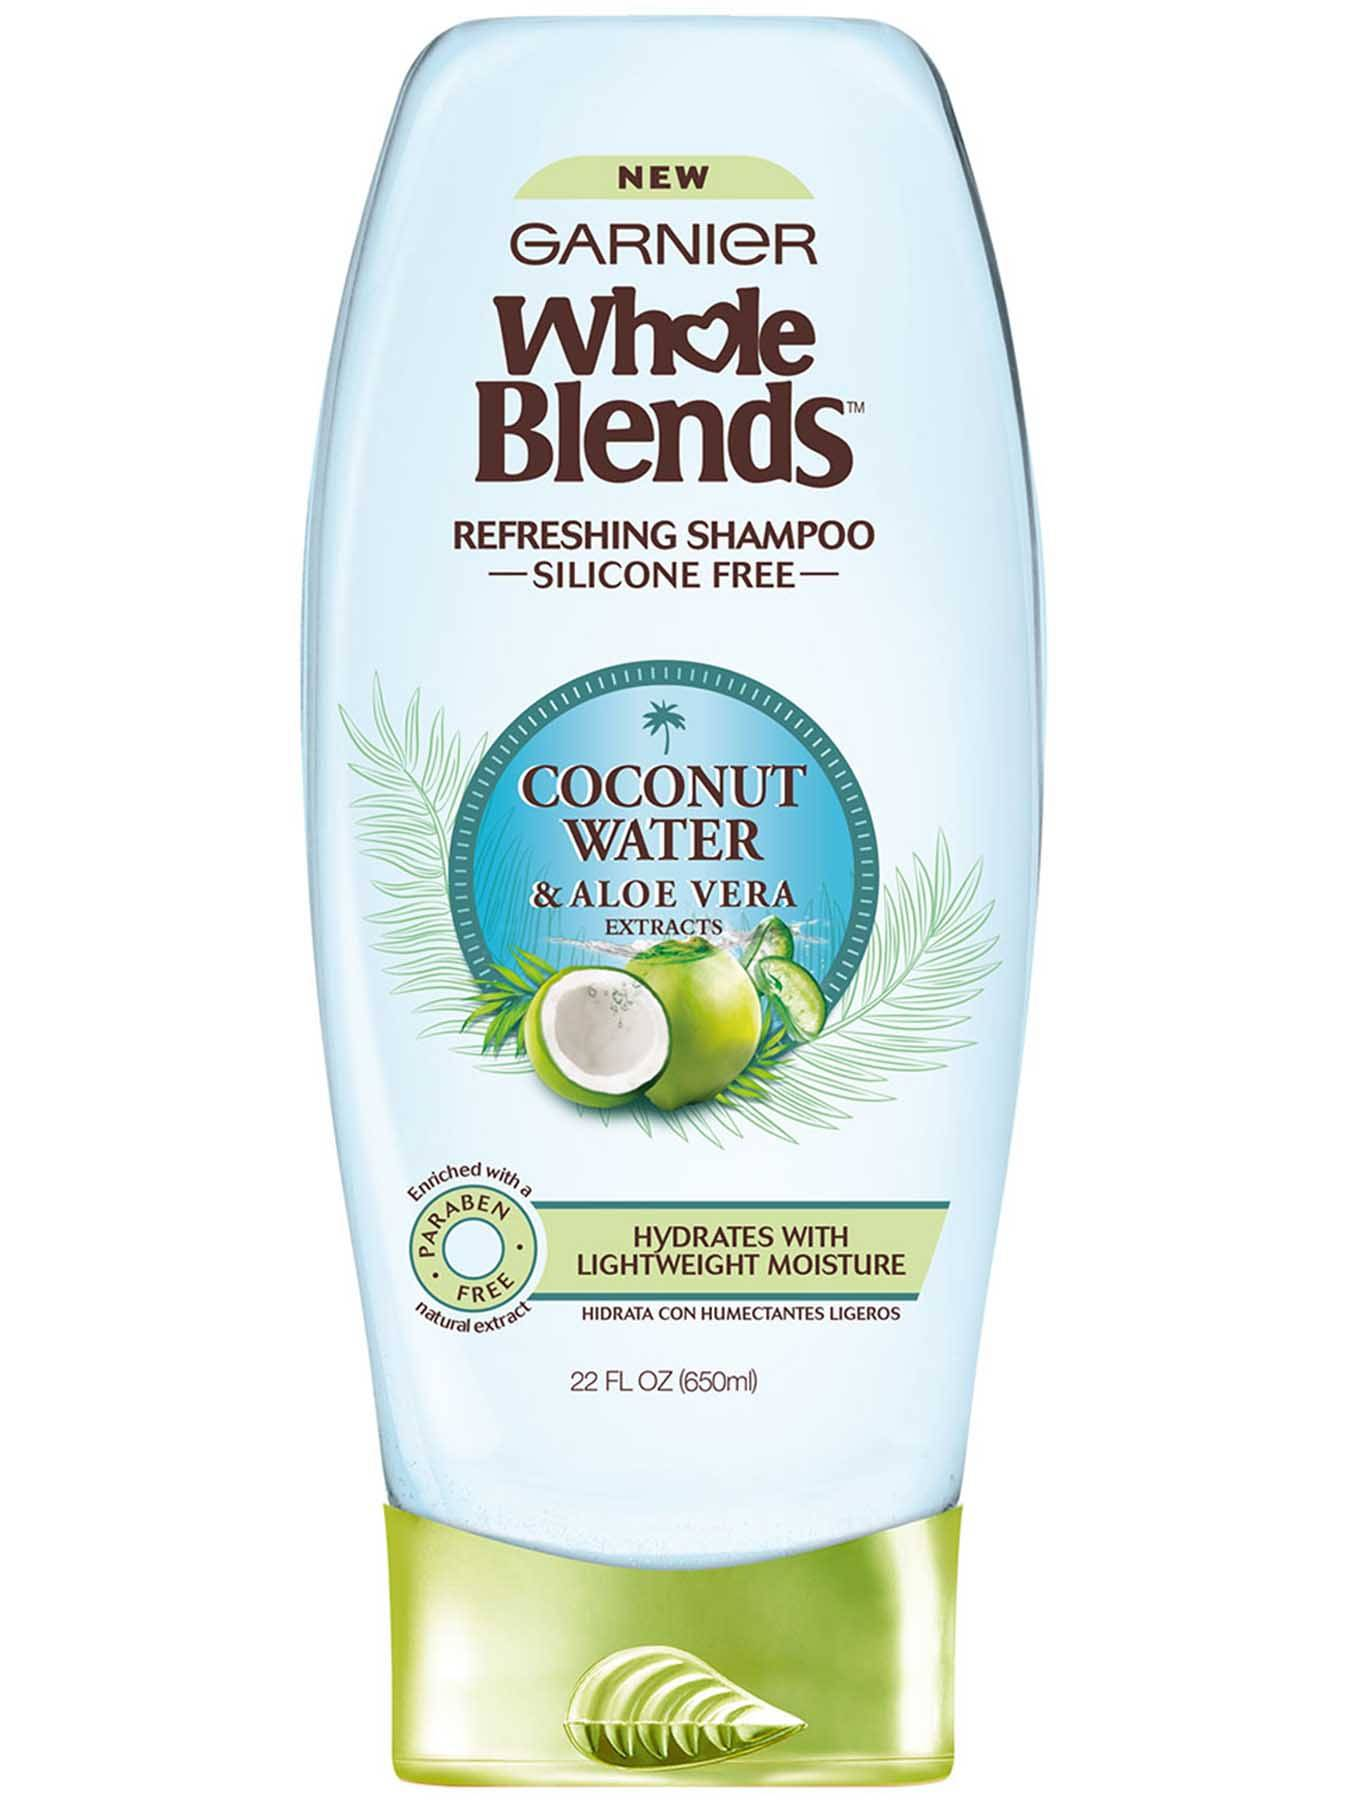 Whole Blends Hydrating Conditioner With Coconut Water Aloe Vera Extracts